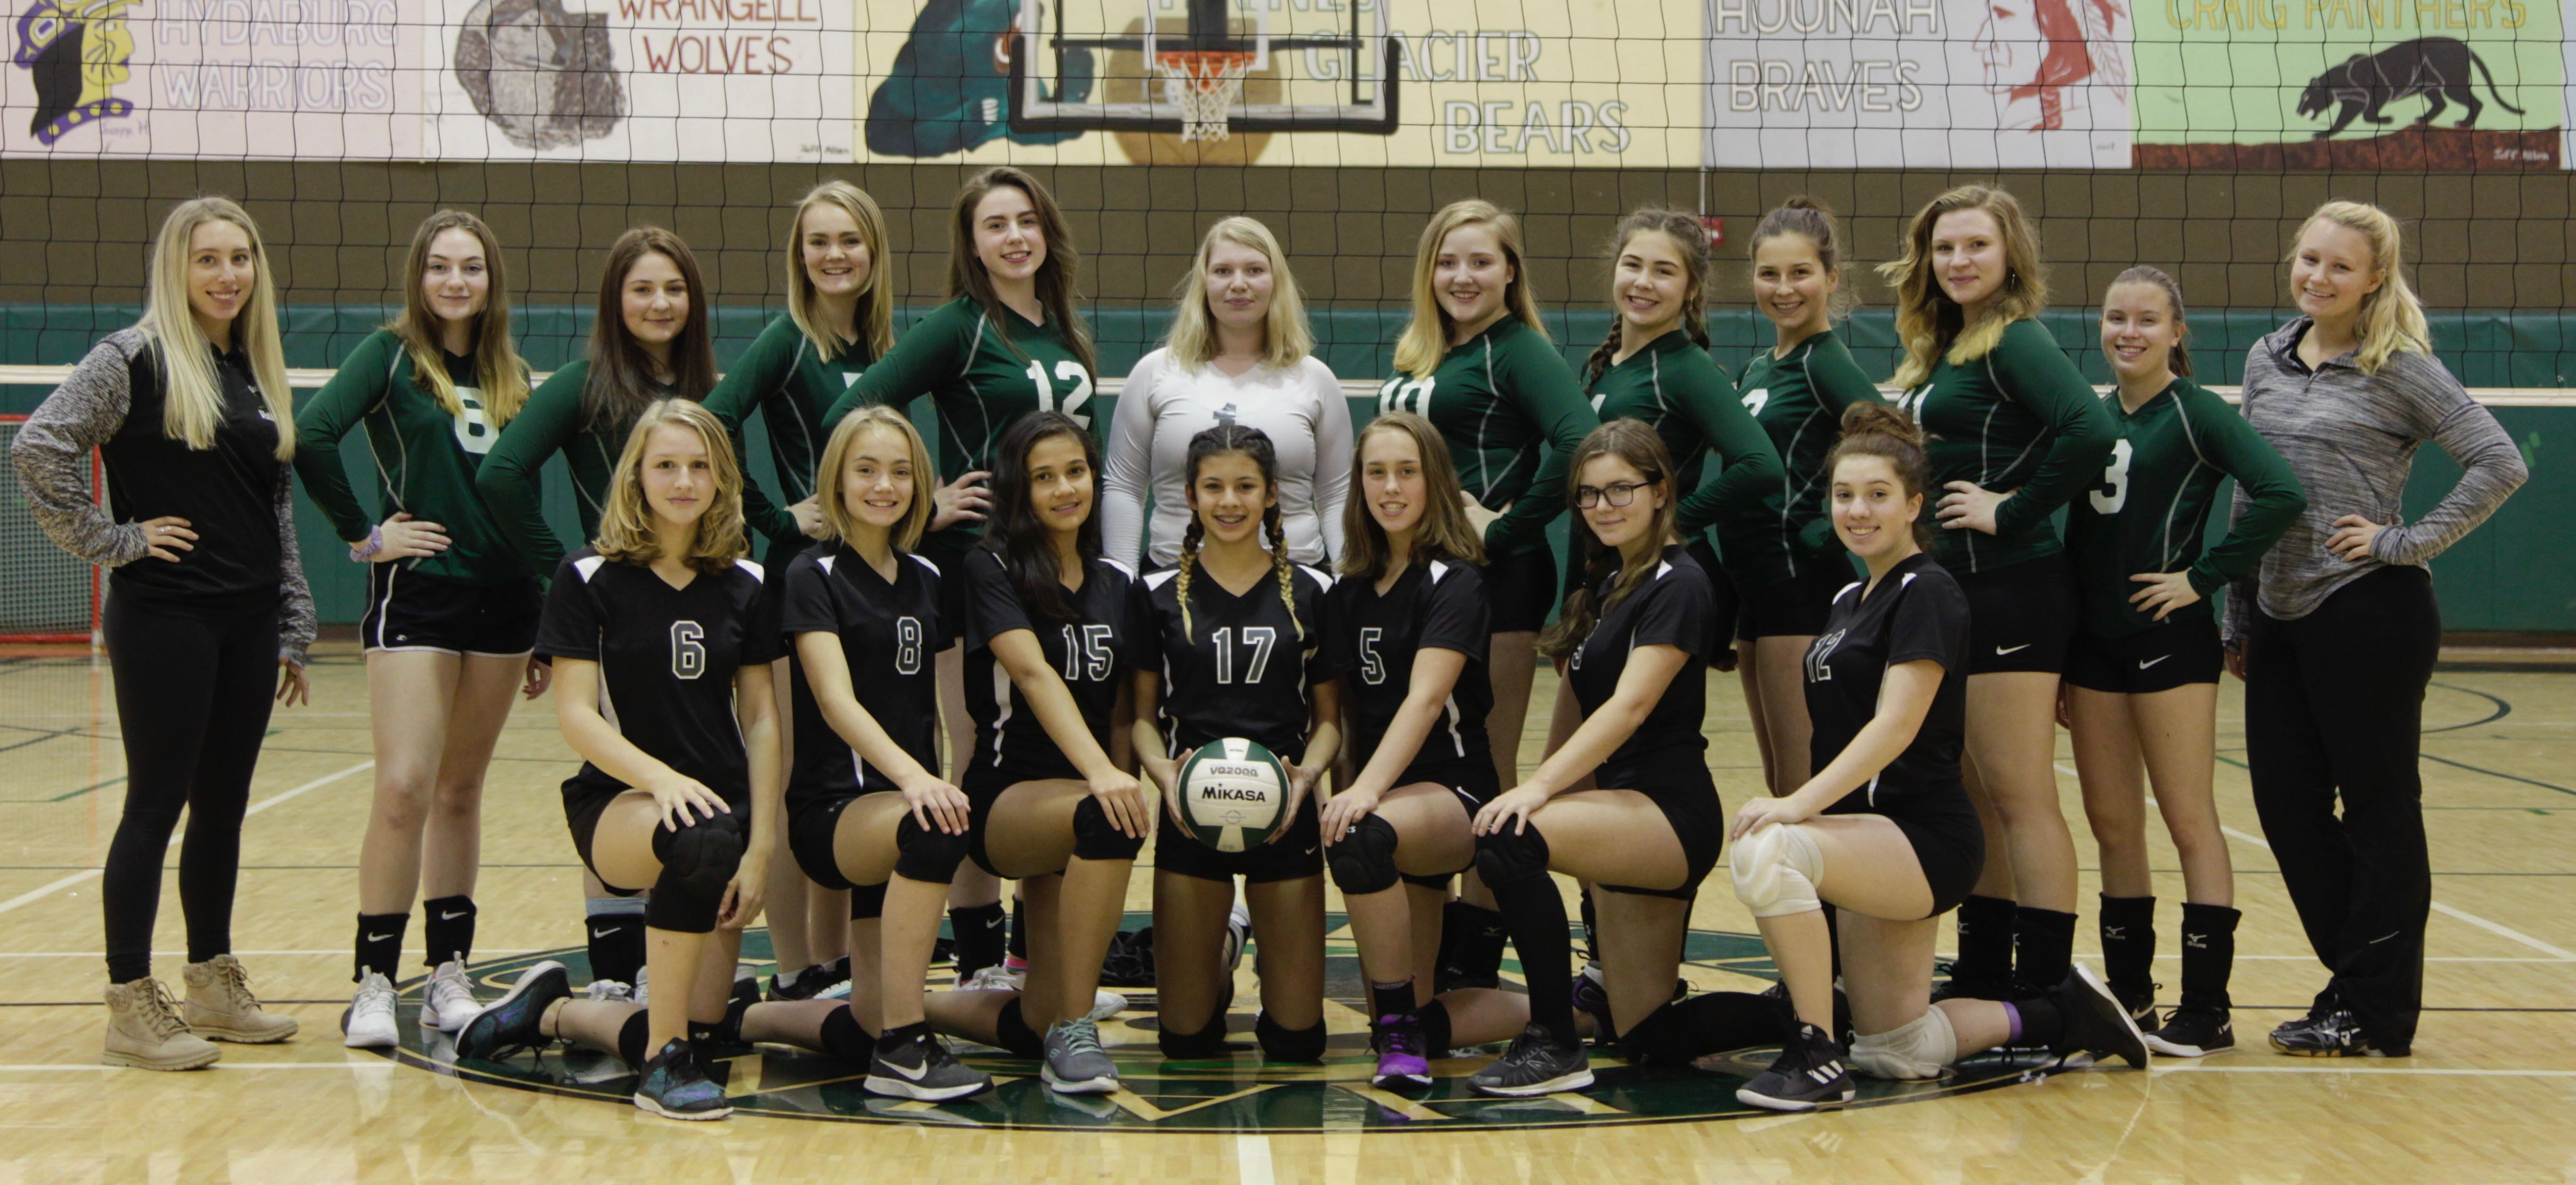 2018-2019 Volleyball